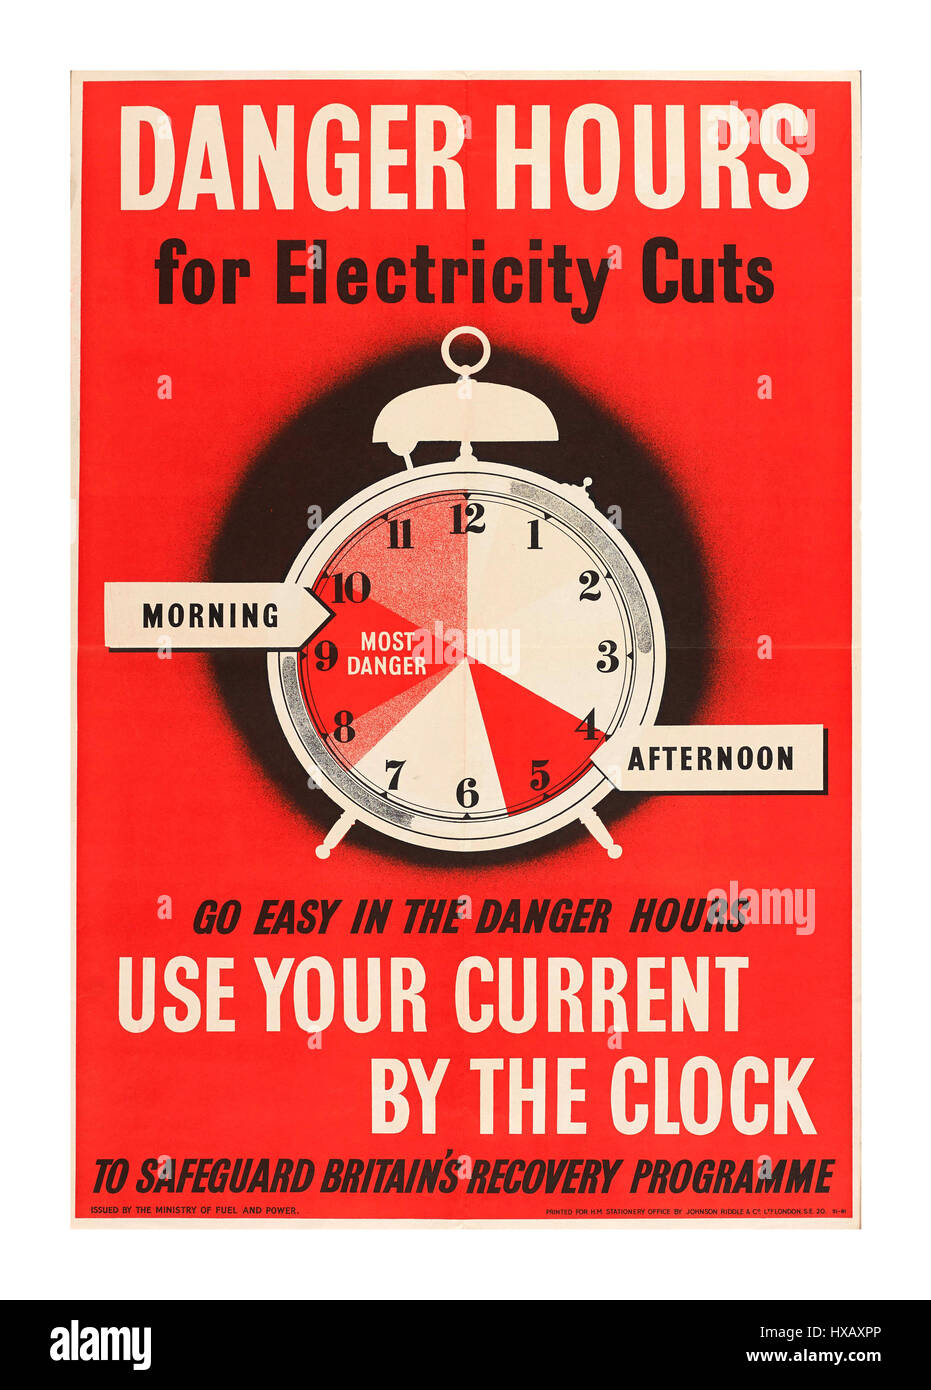 Vintage 1940's WW2 poster advising of possible electricity cuts in peak hours - Stock Image